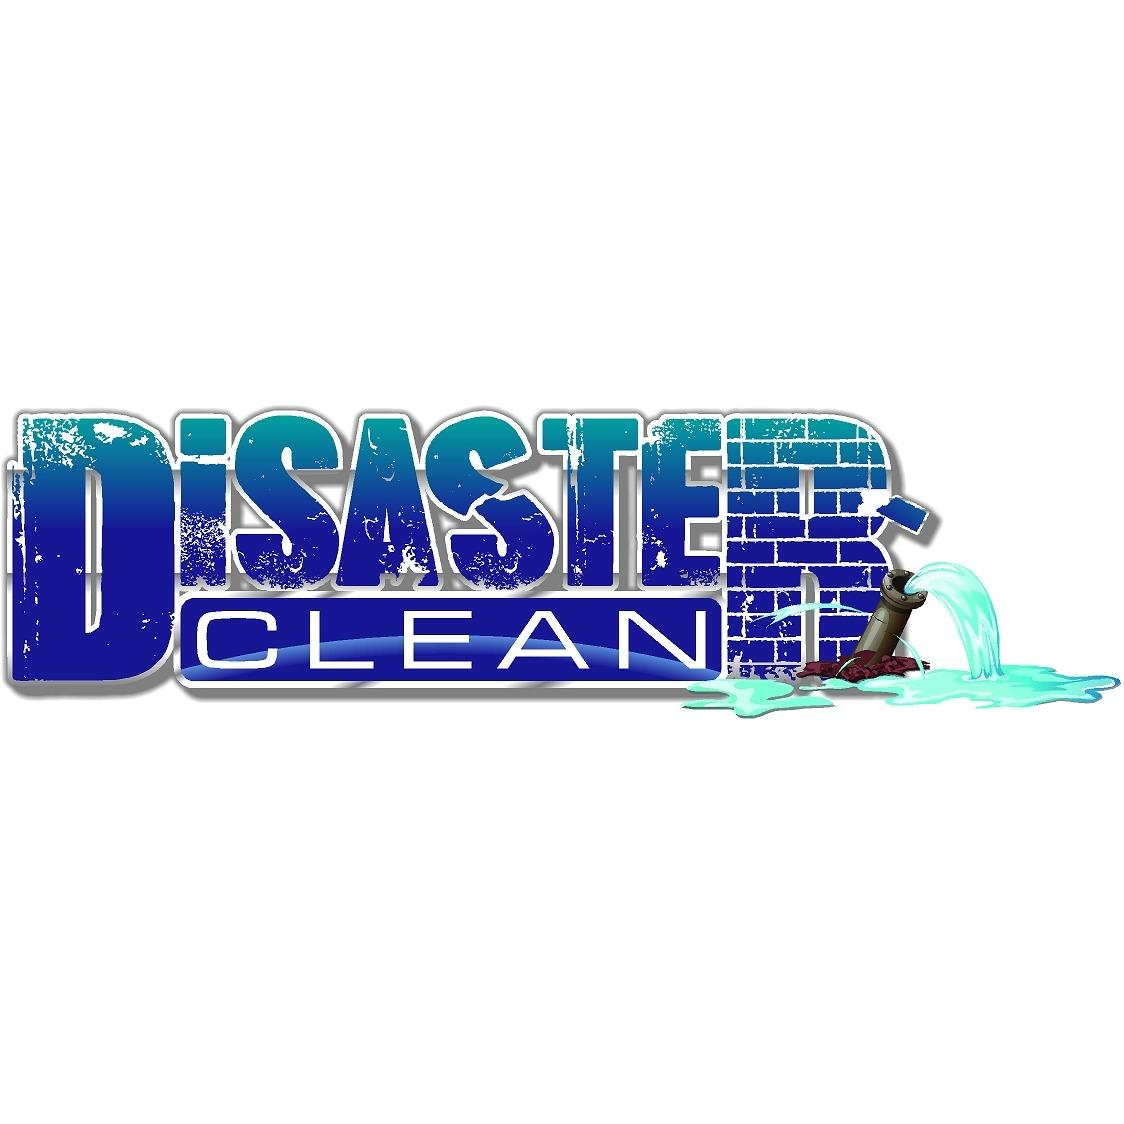 Disaster Clean image 9